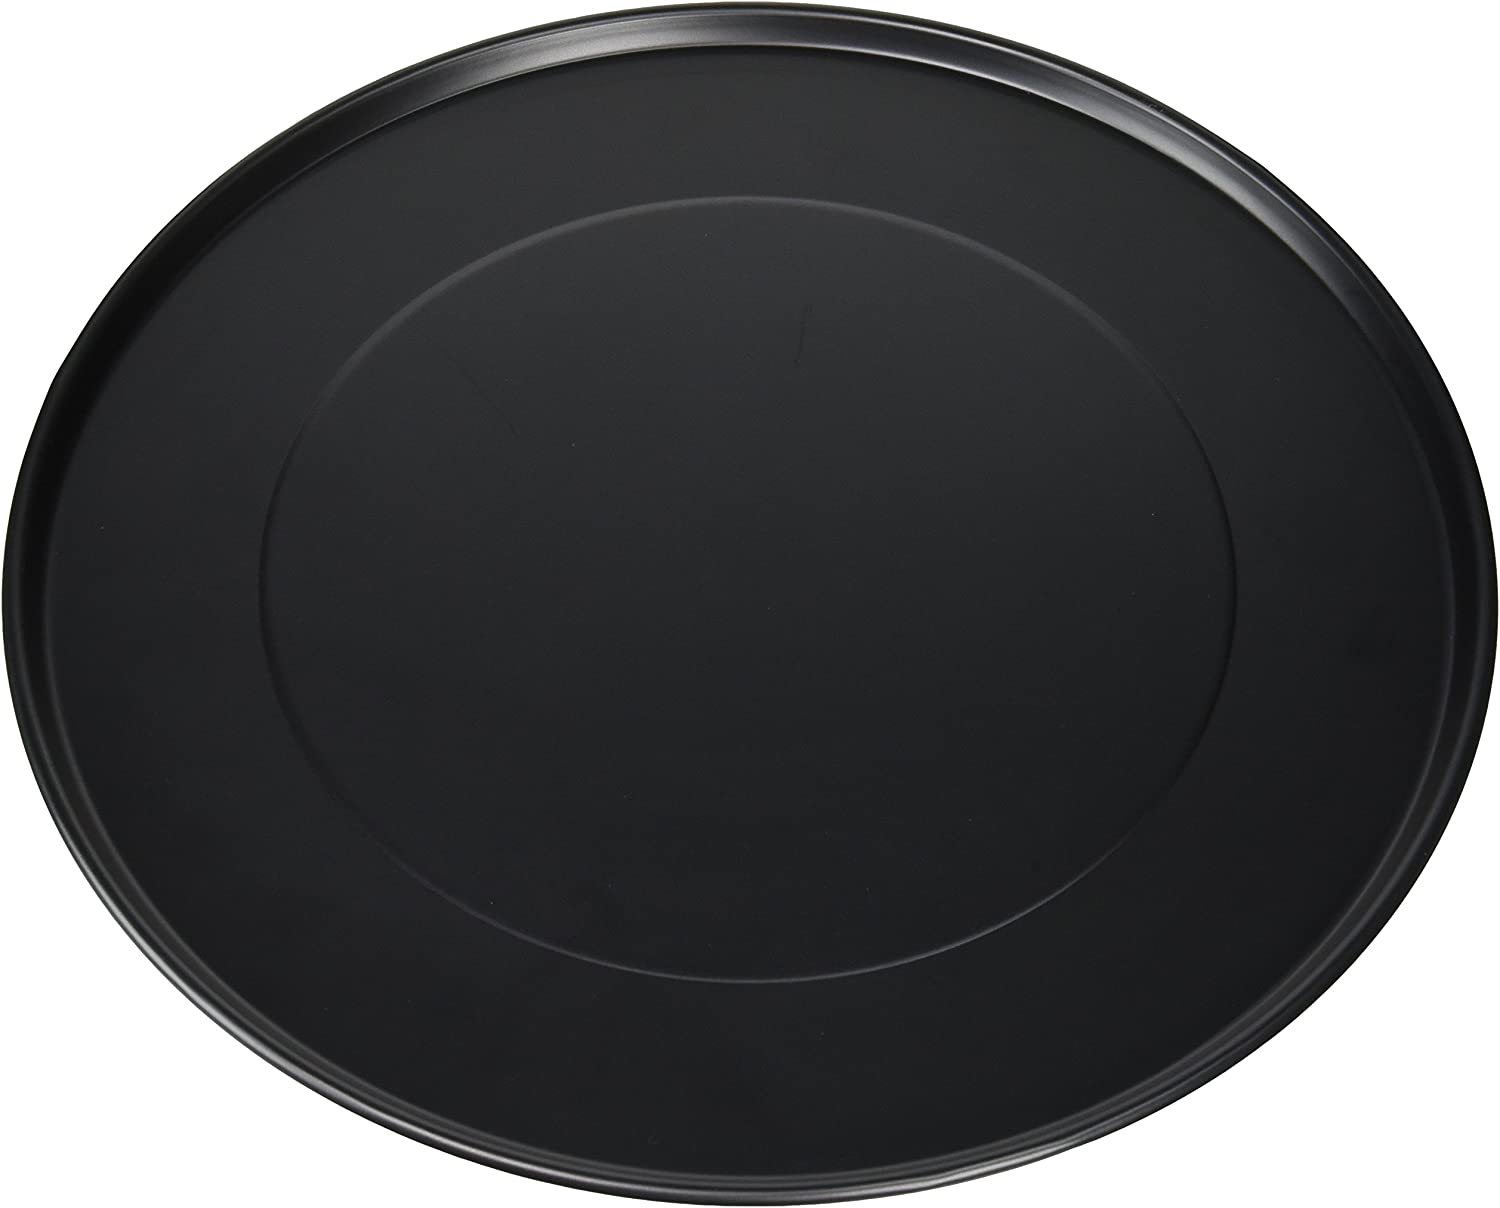 Breville BOV650PP12 12-Inch Pizza Pan for use with the BOV650XL Smart Oven,Black